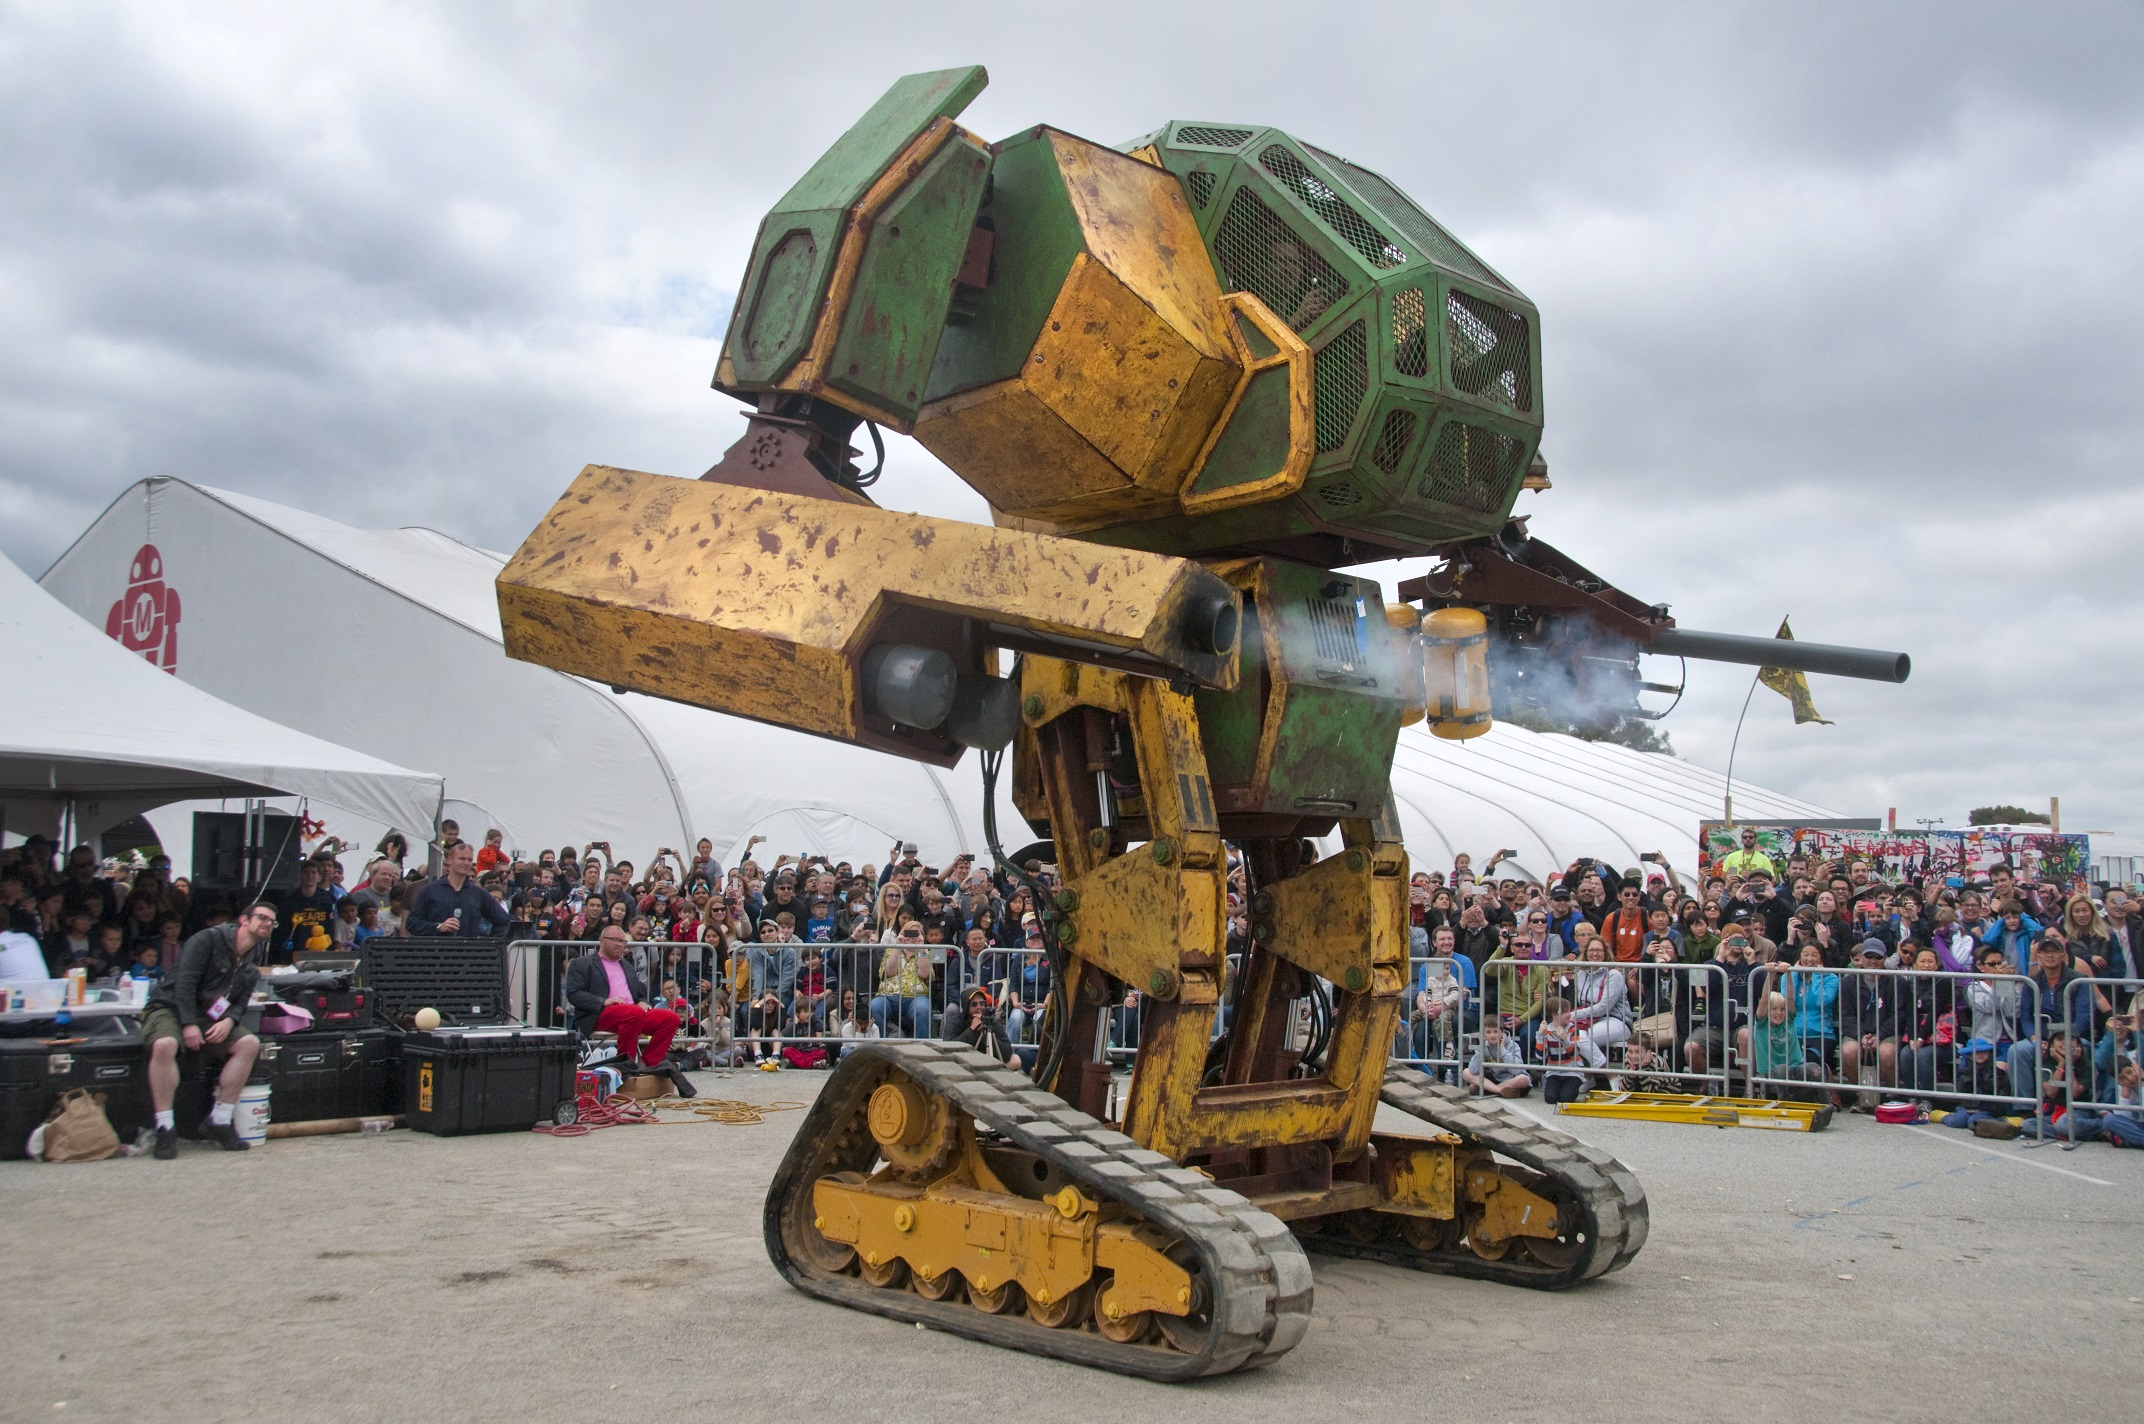 America takes on Japan in terrifying giant mech battle this August